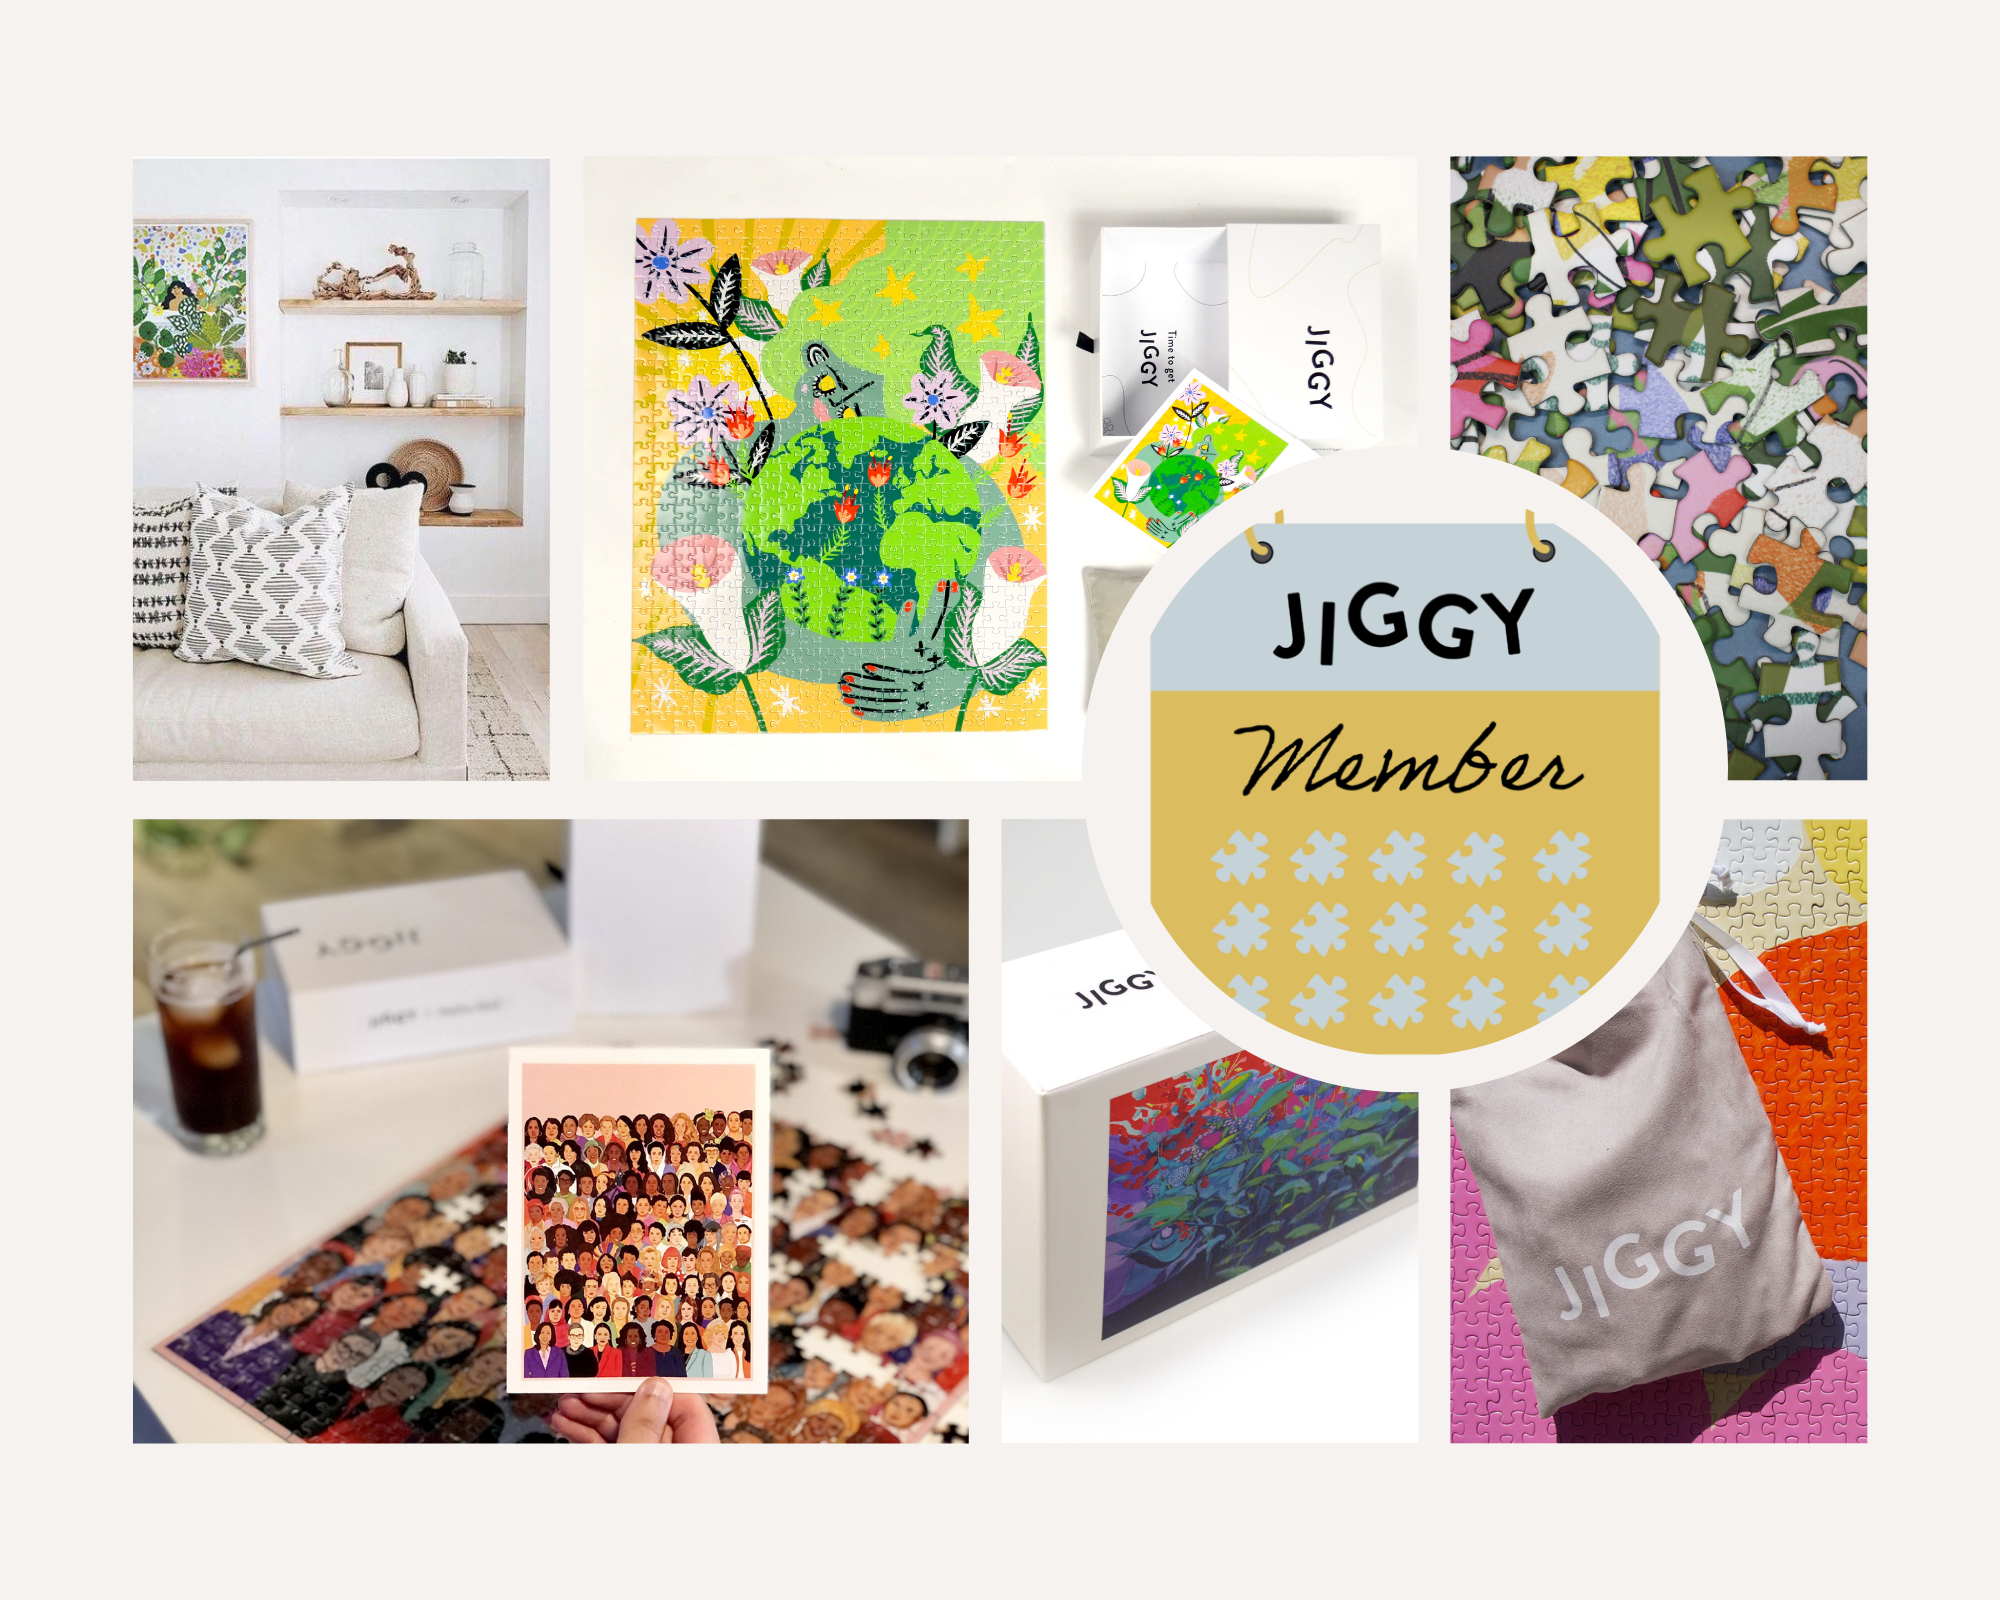 Photo collage of Jiggy membership products